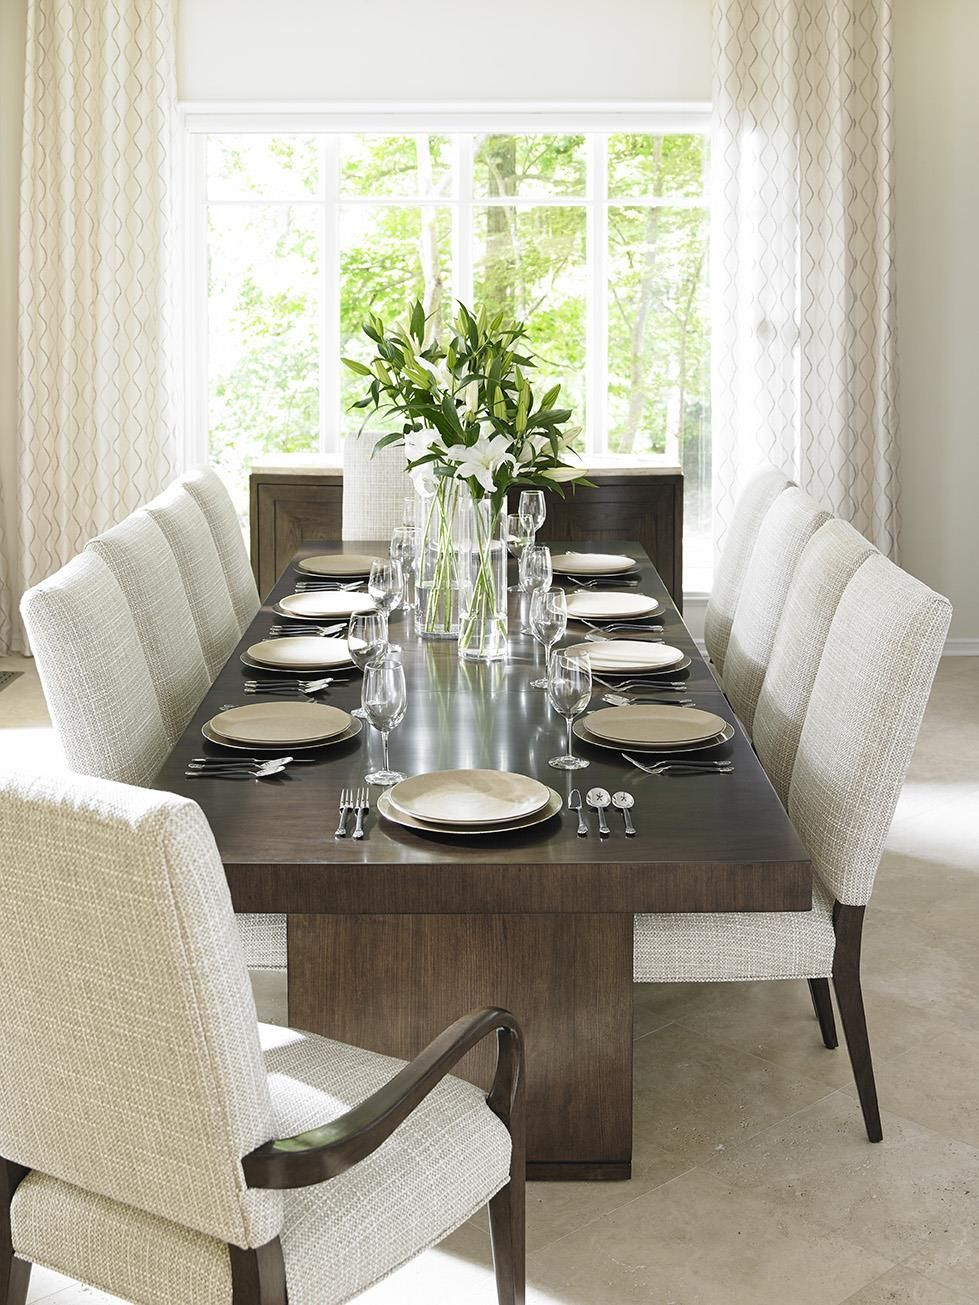 Laurel Canyon Eleven Piece Dining Set With San Lorenzo Table And Married Fabric Sierra Chairs By Lexington At Baer S Furniture Rectangular Dining Room Set Rectangular Dining Table Dining Room Table Centerpieces